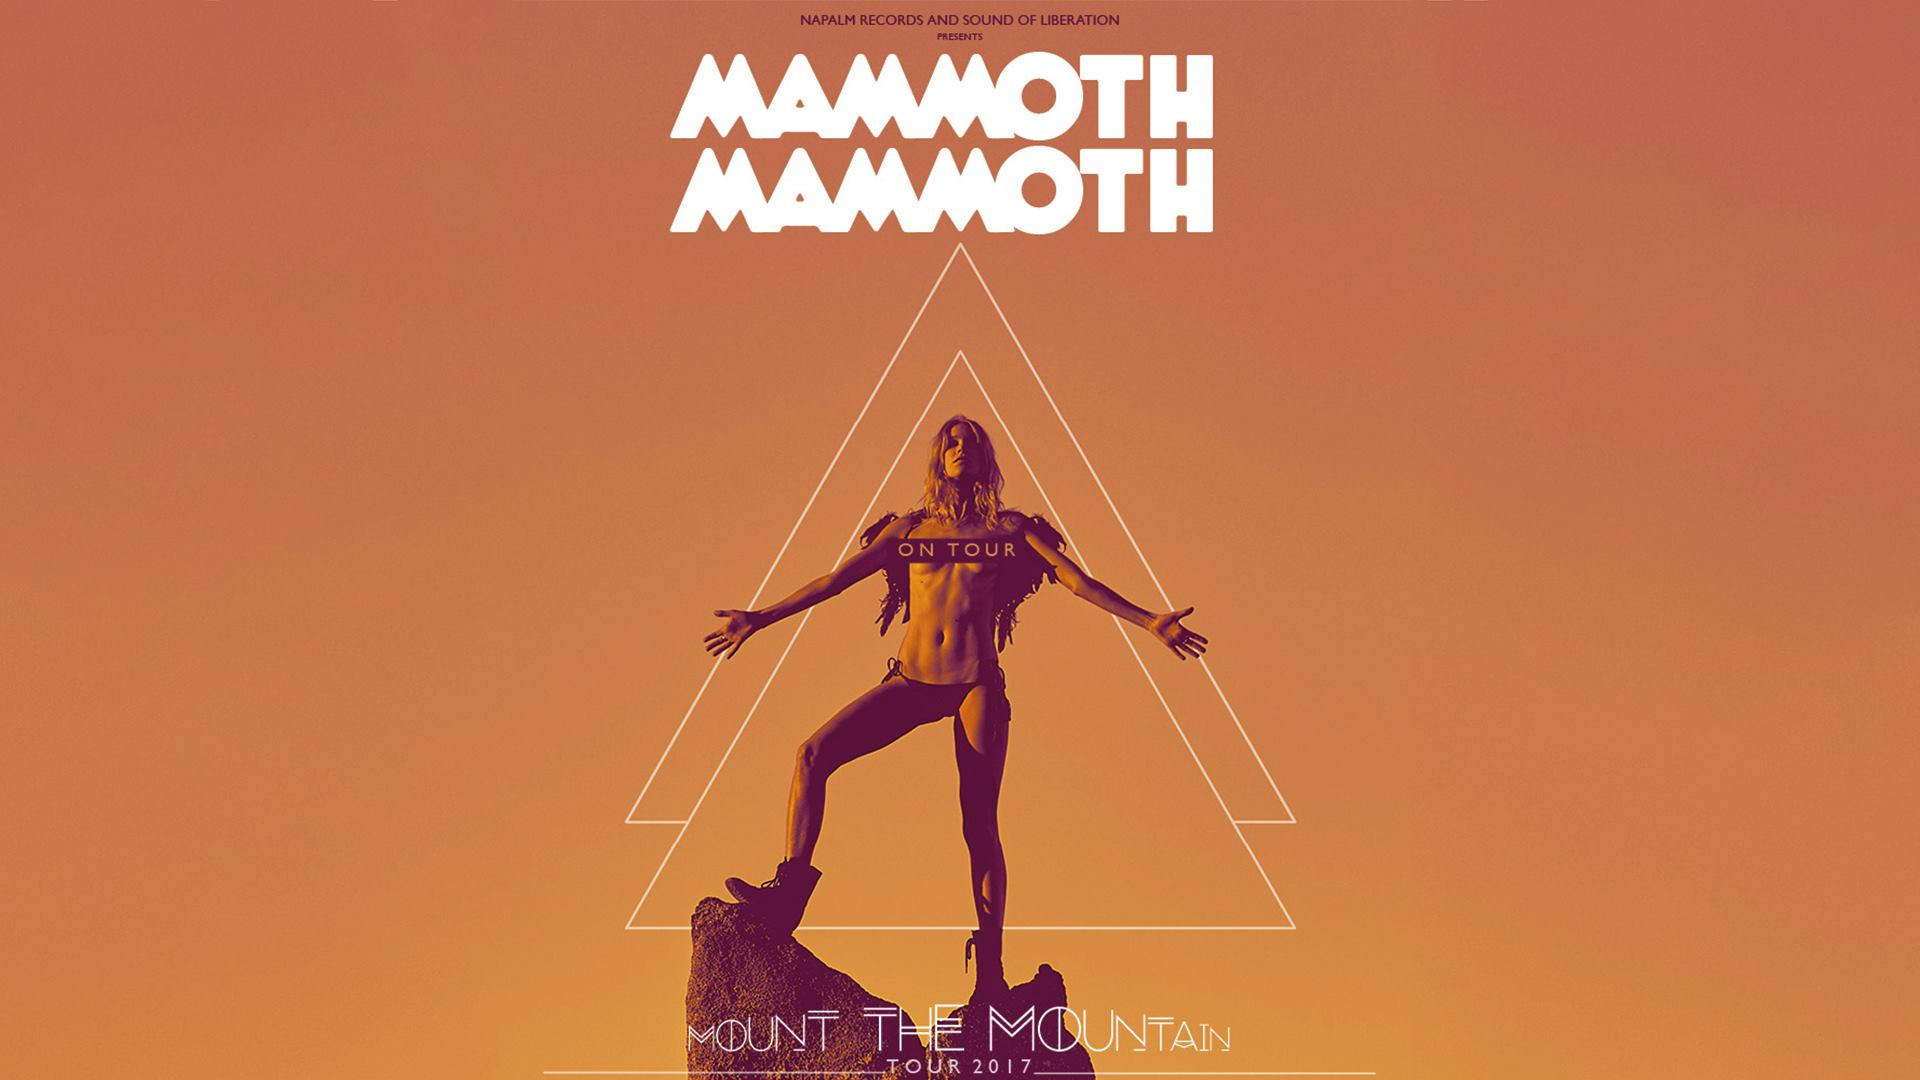 Preview: Mammoth Mammoth